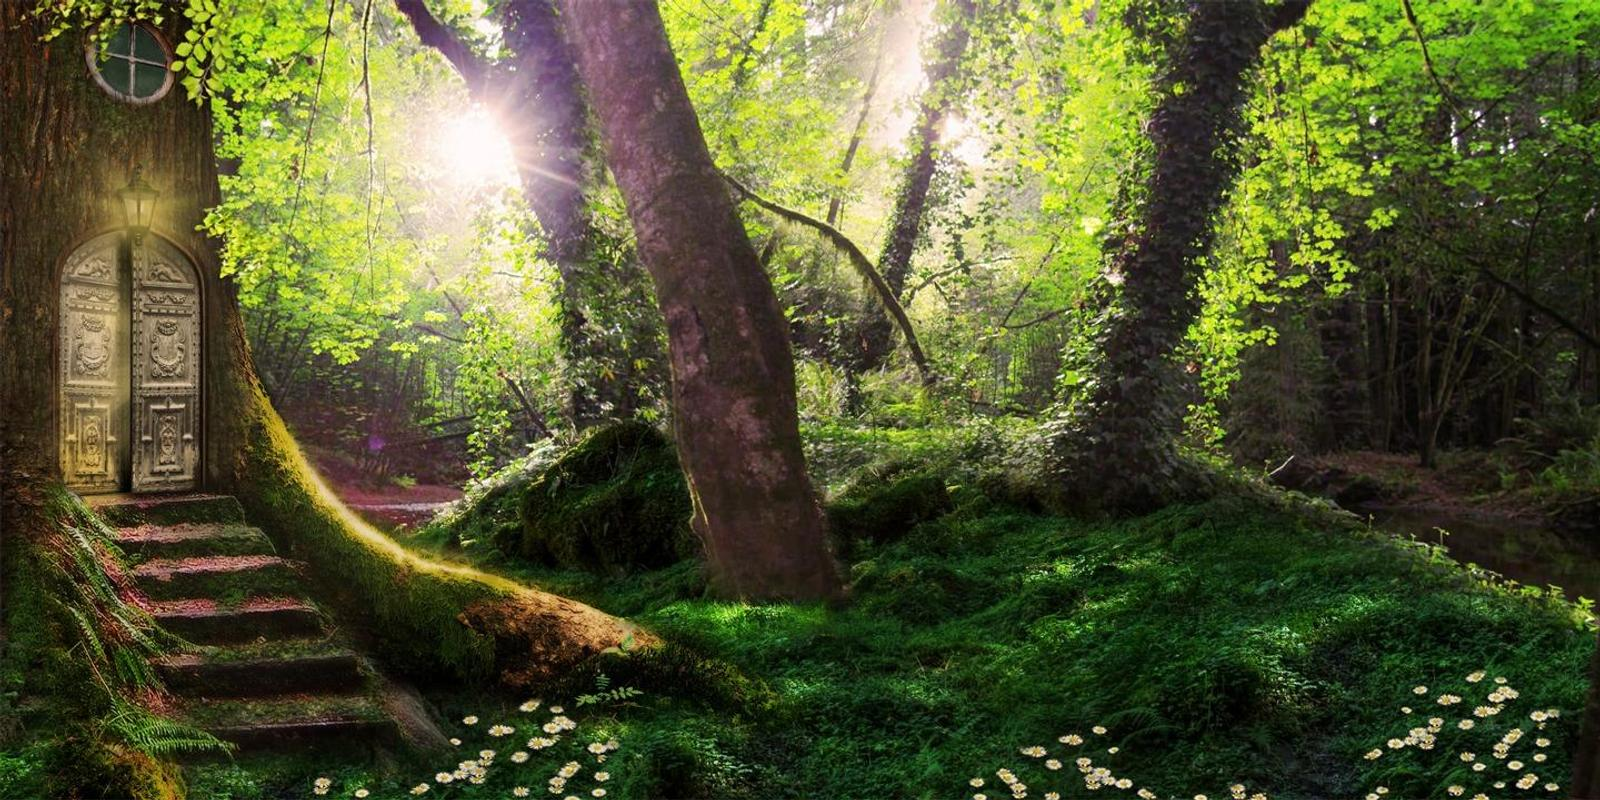 Magic forest live wallpaper for Android - APK Download